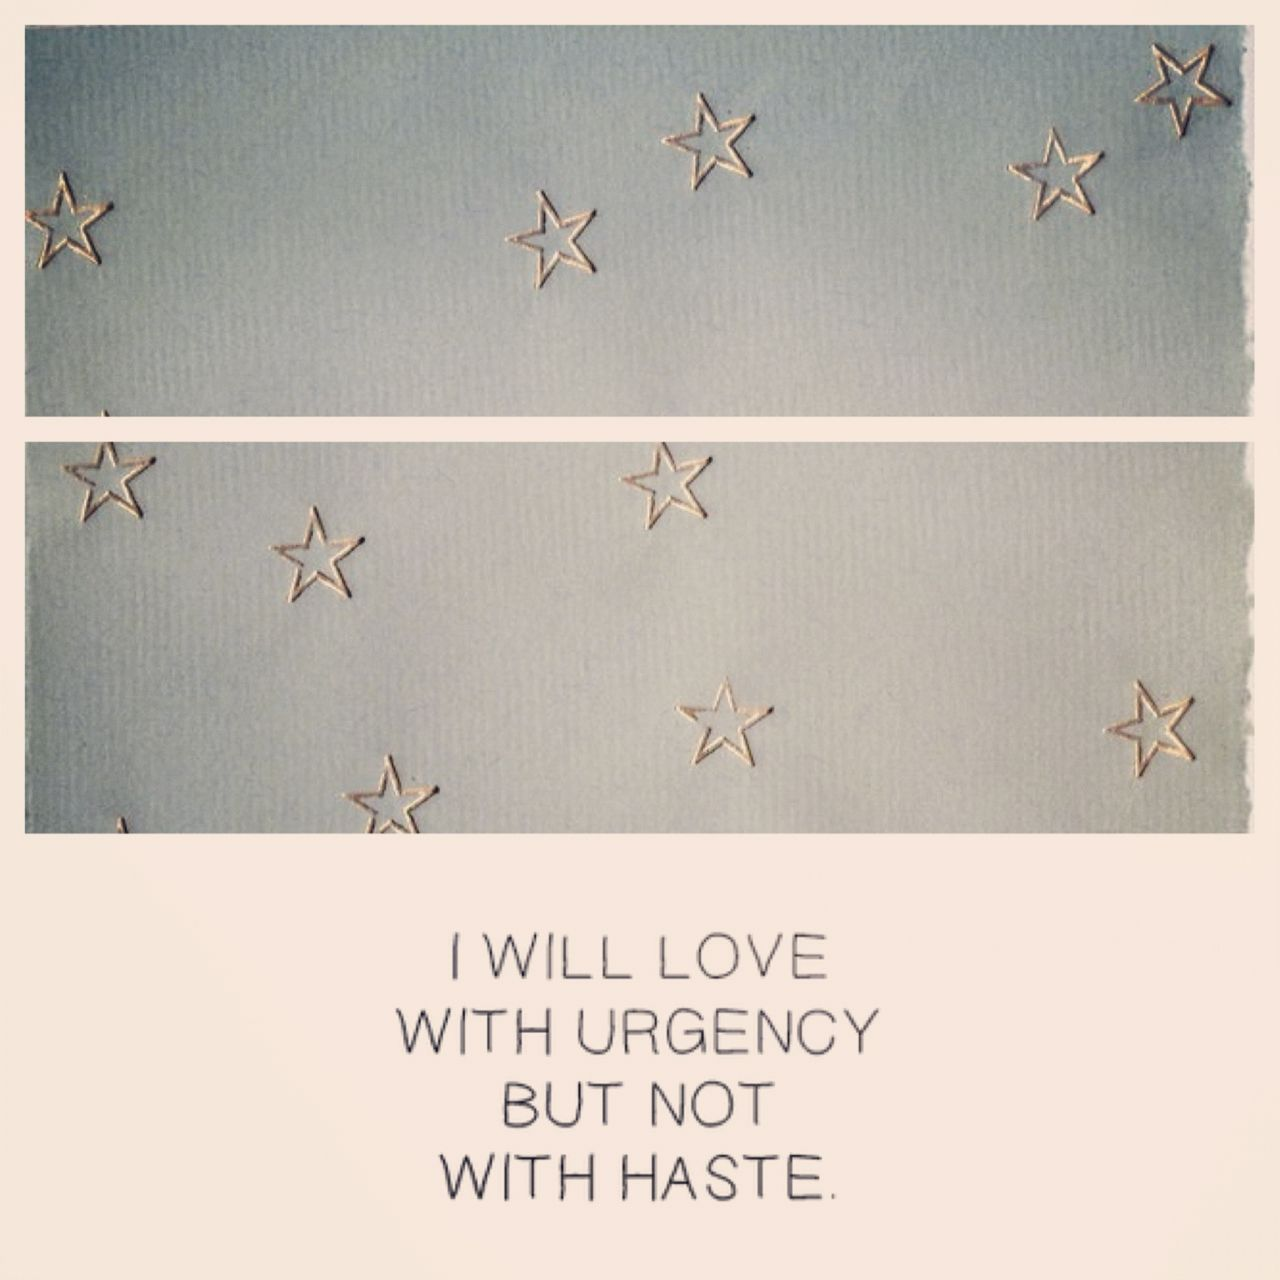 I will live with urgency but not with haste